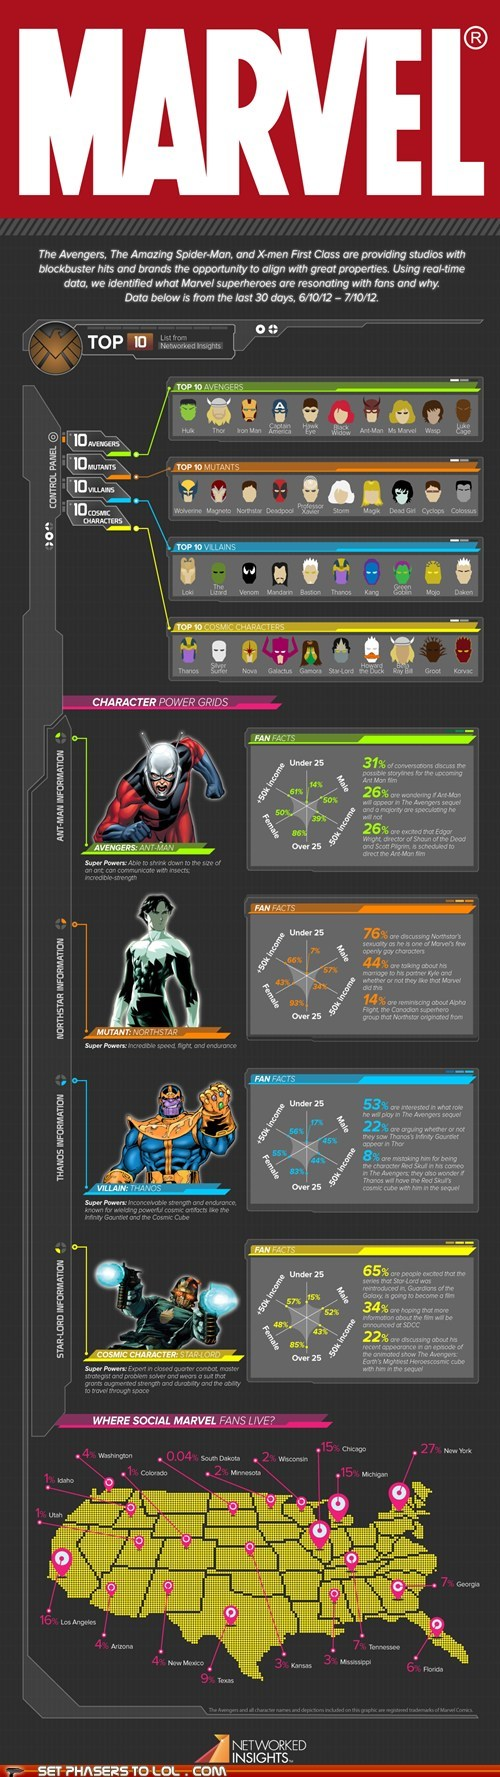 avengers,infographic,marvel,mutants,popularity,Spider-Man,superheroes,the lizard,x men